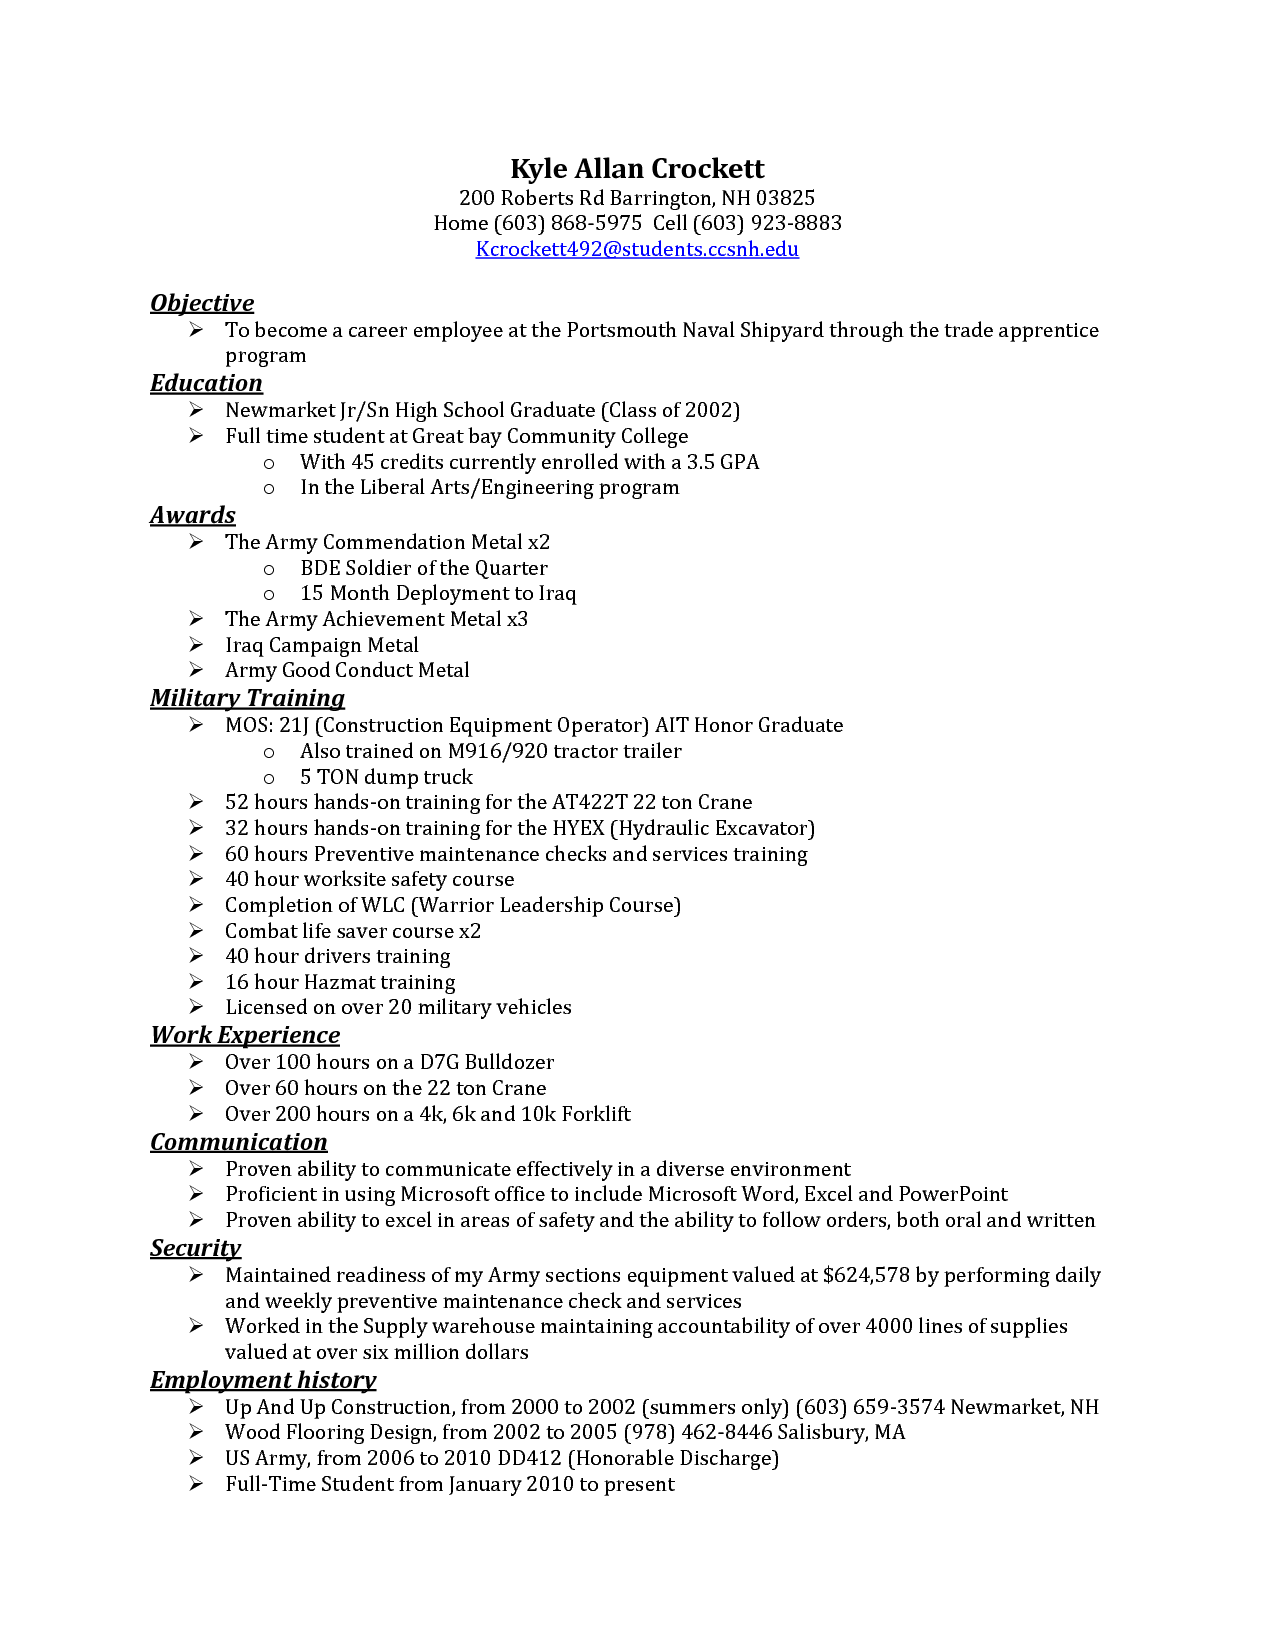 Guidance counselor resume cover letter. Your perfect